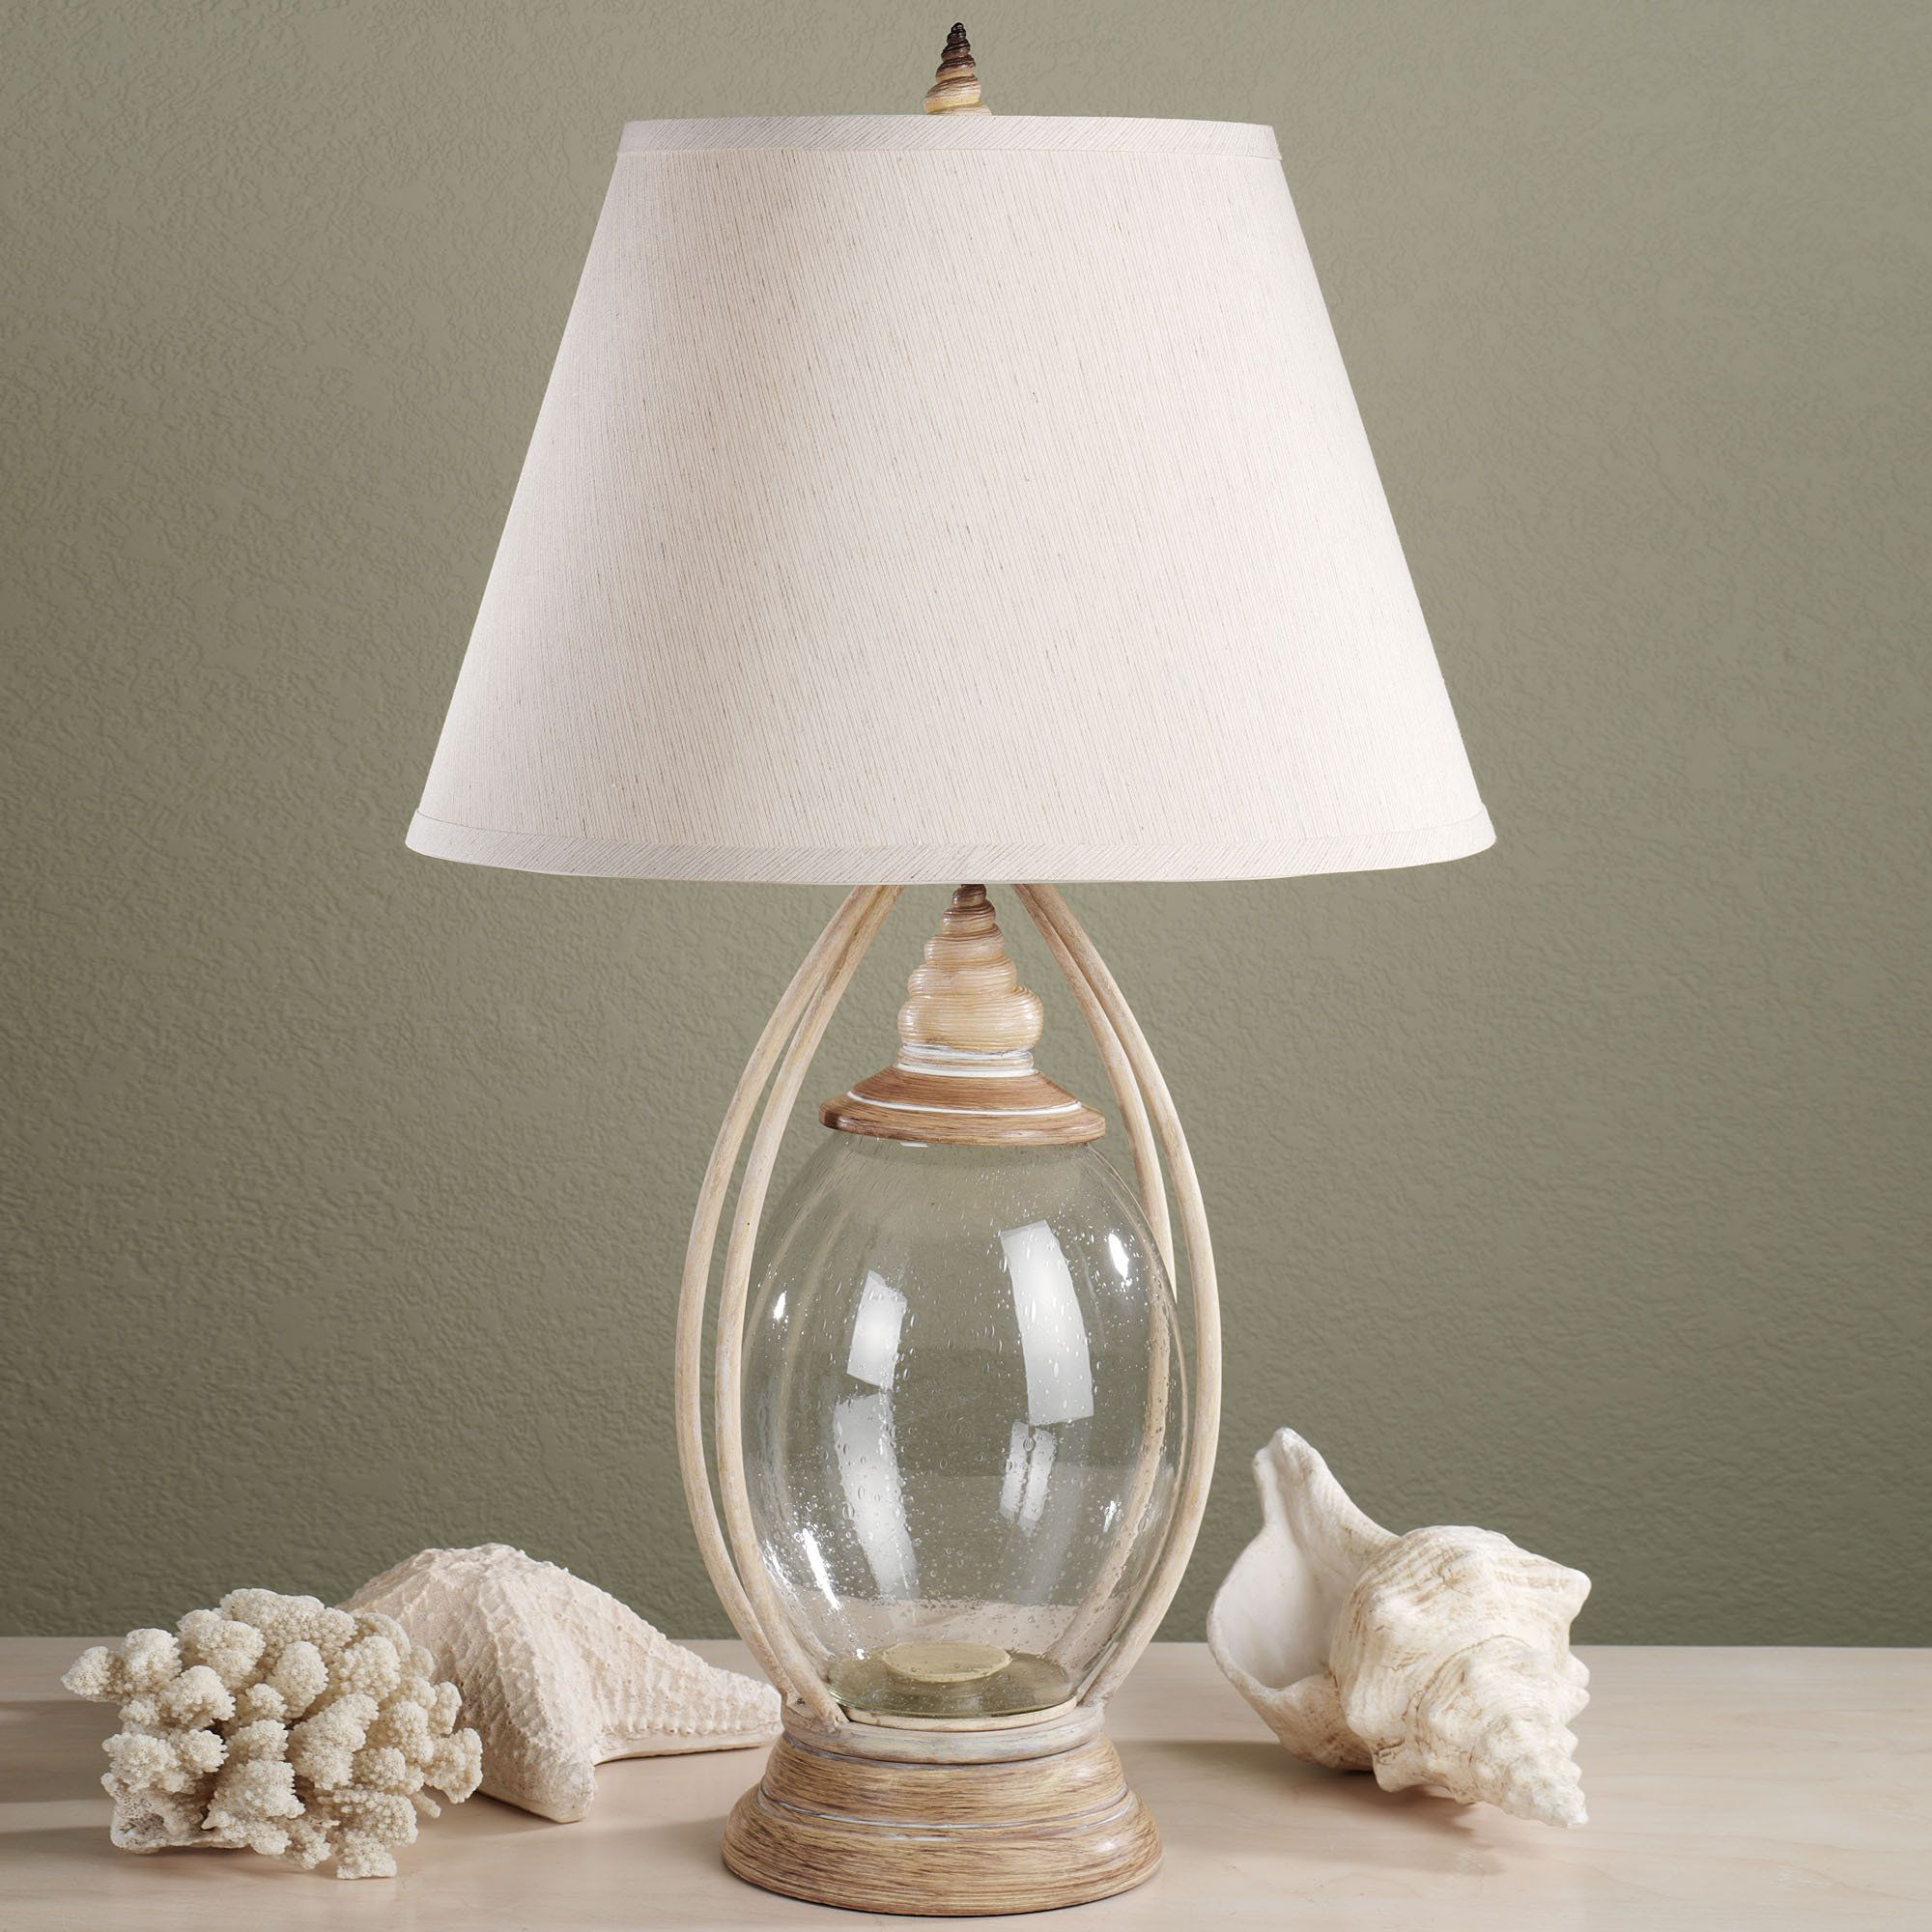 bedroom table lamps lighting. sea treasures fillable glass table lamp bedroom lamps lighting